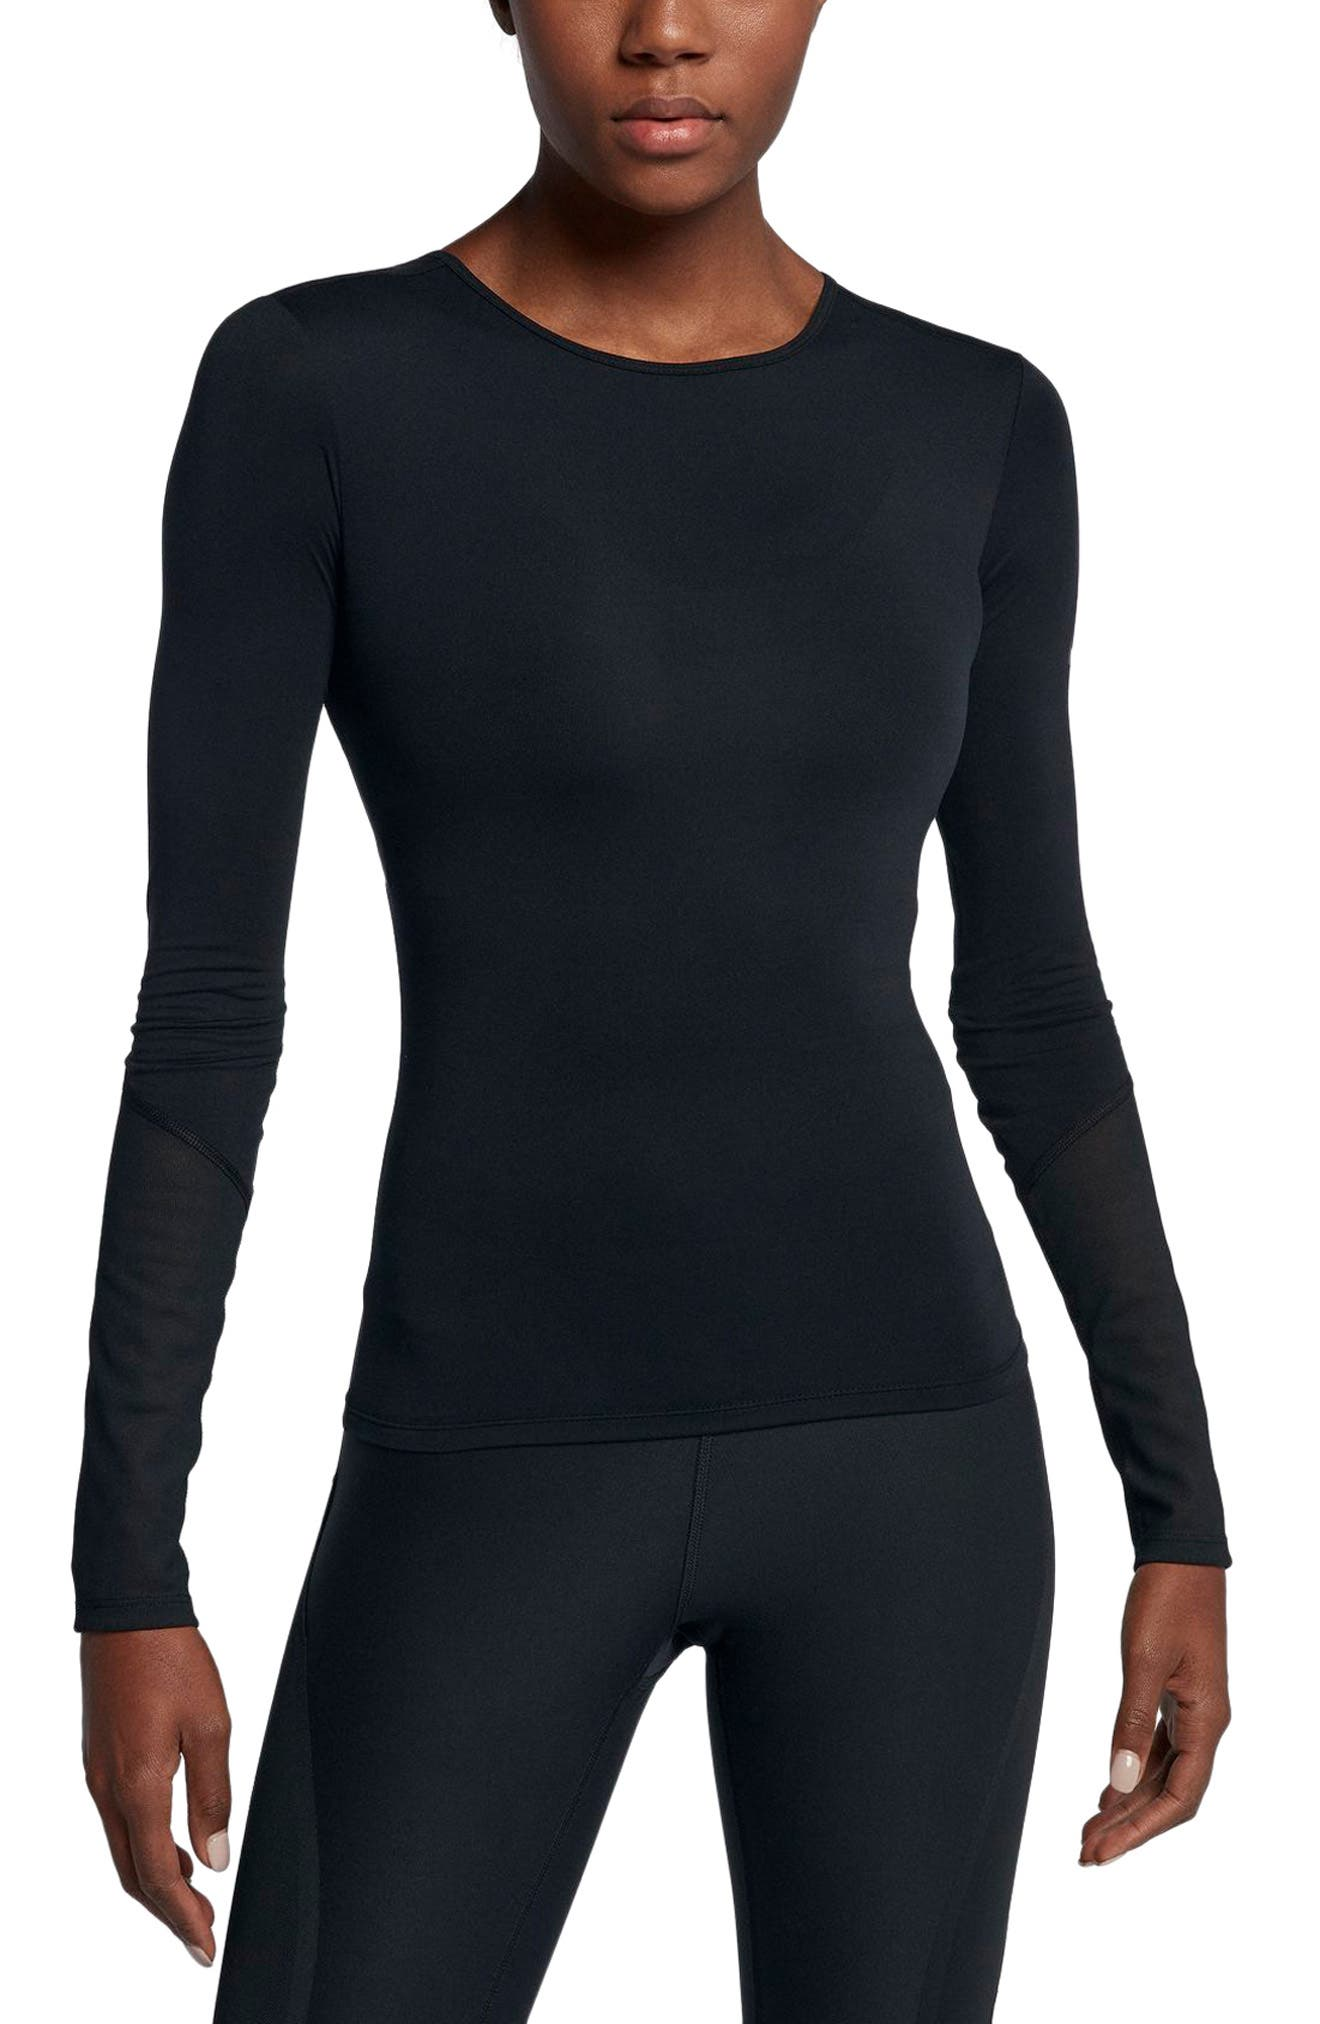 Dry Wrap Training Top,                         Main,                         color, 010